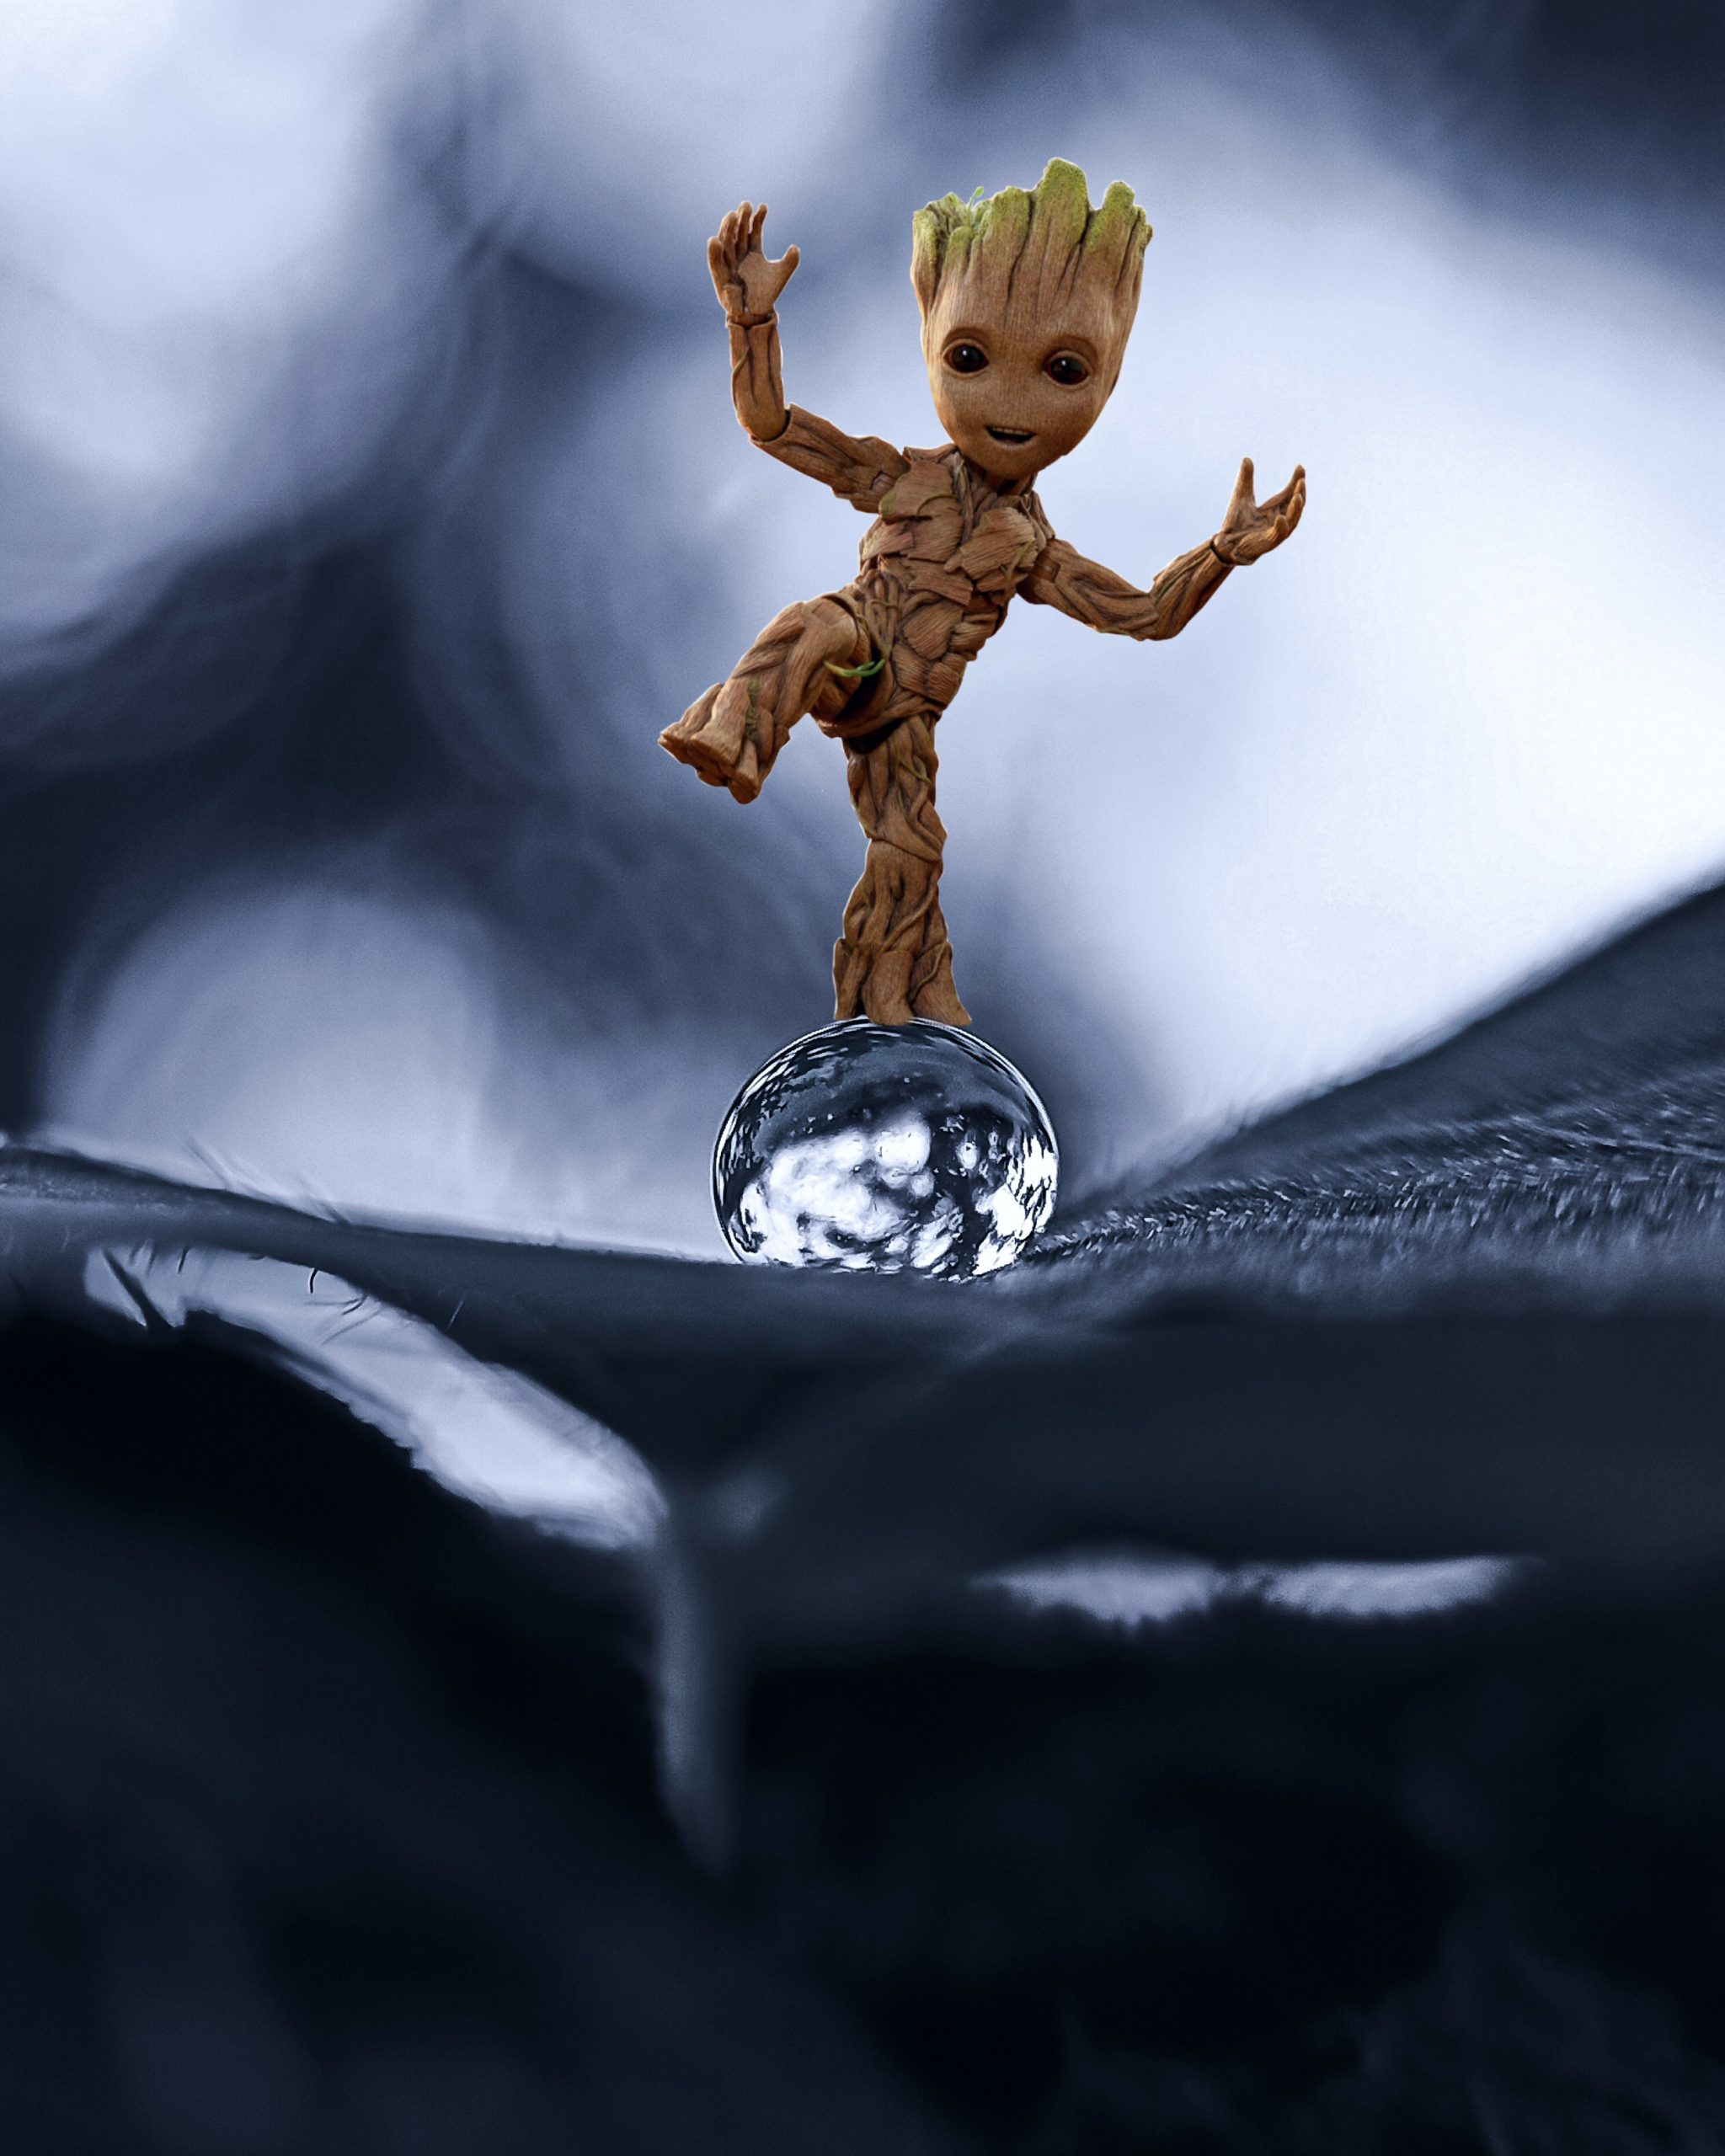 Fictional character Groot on a drop